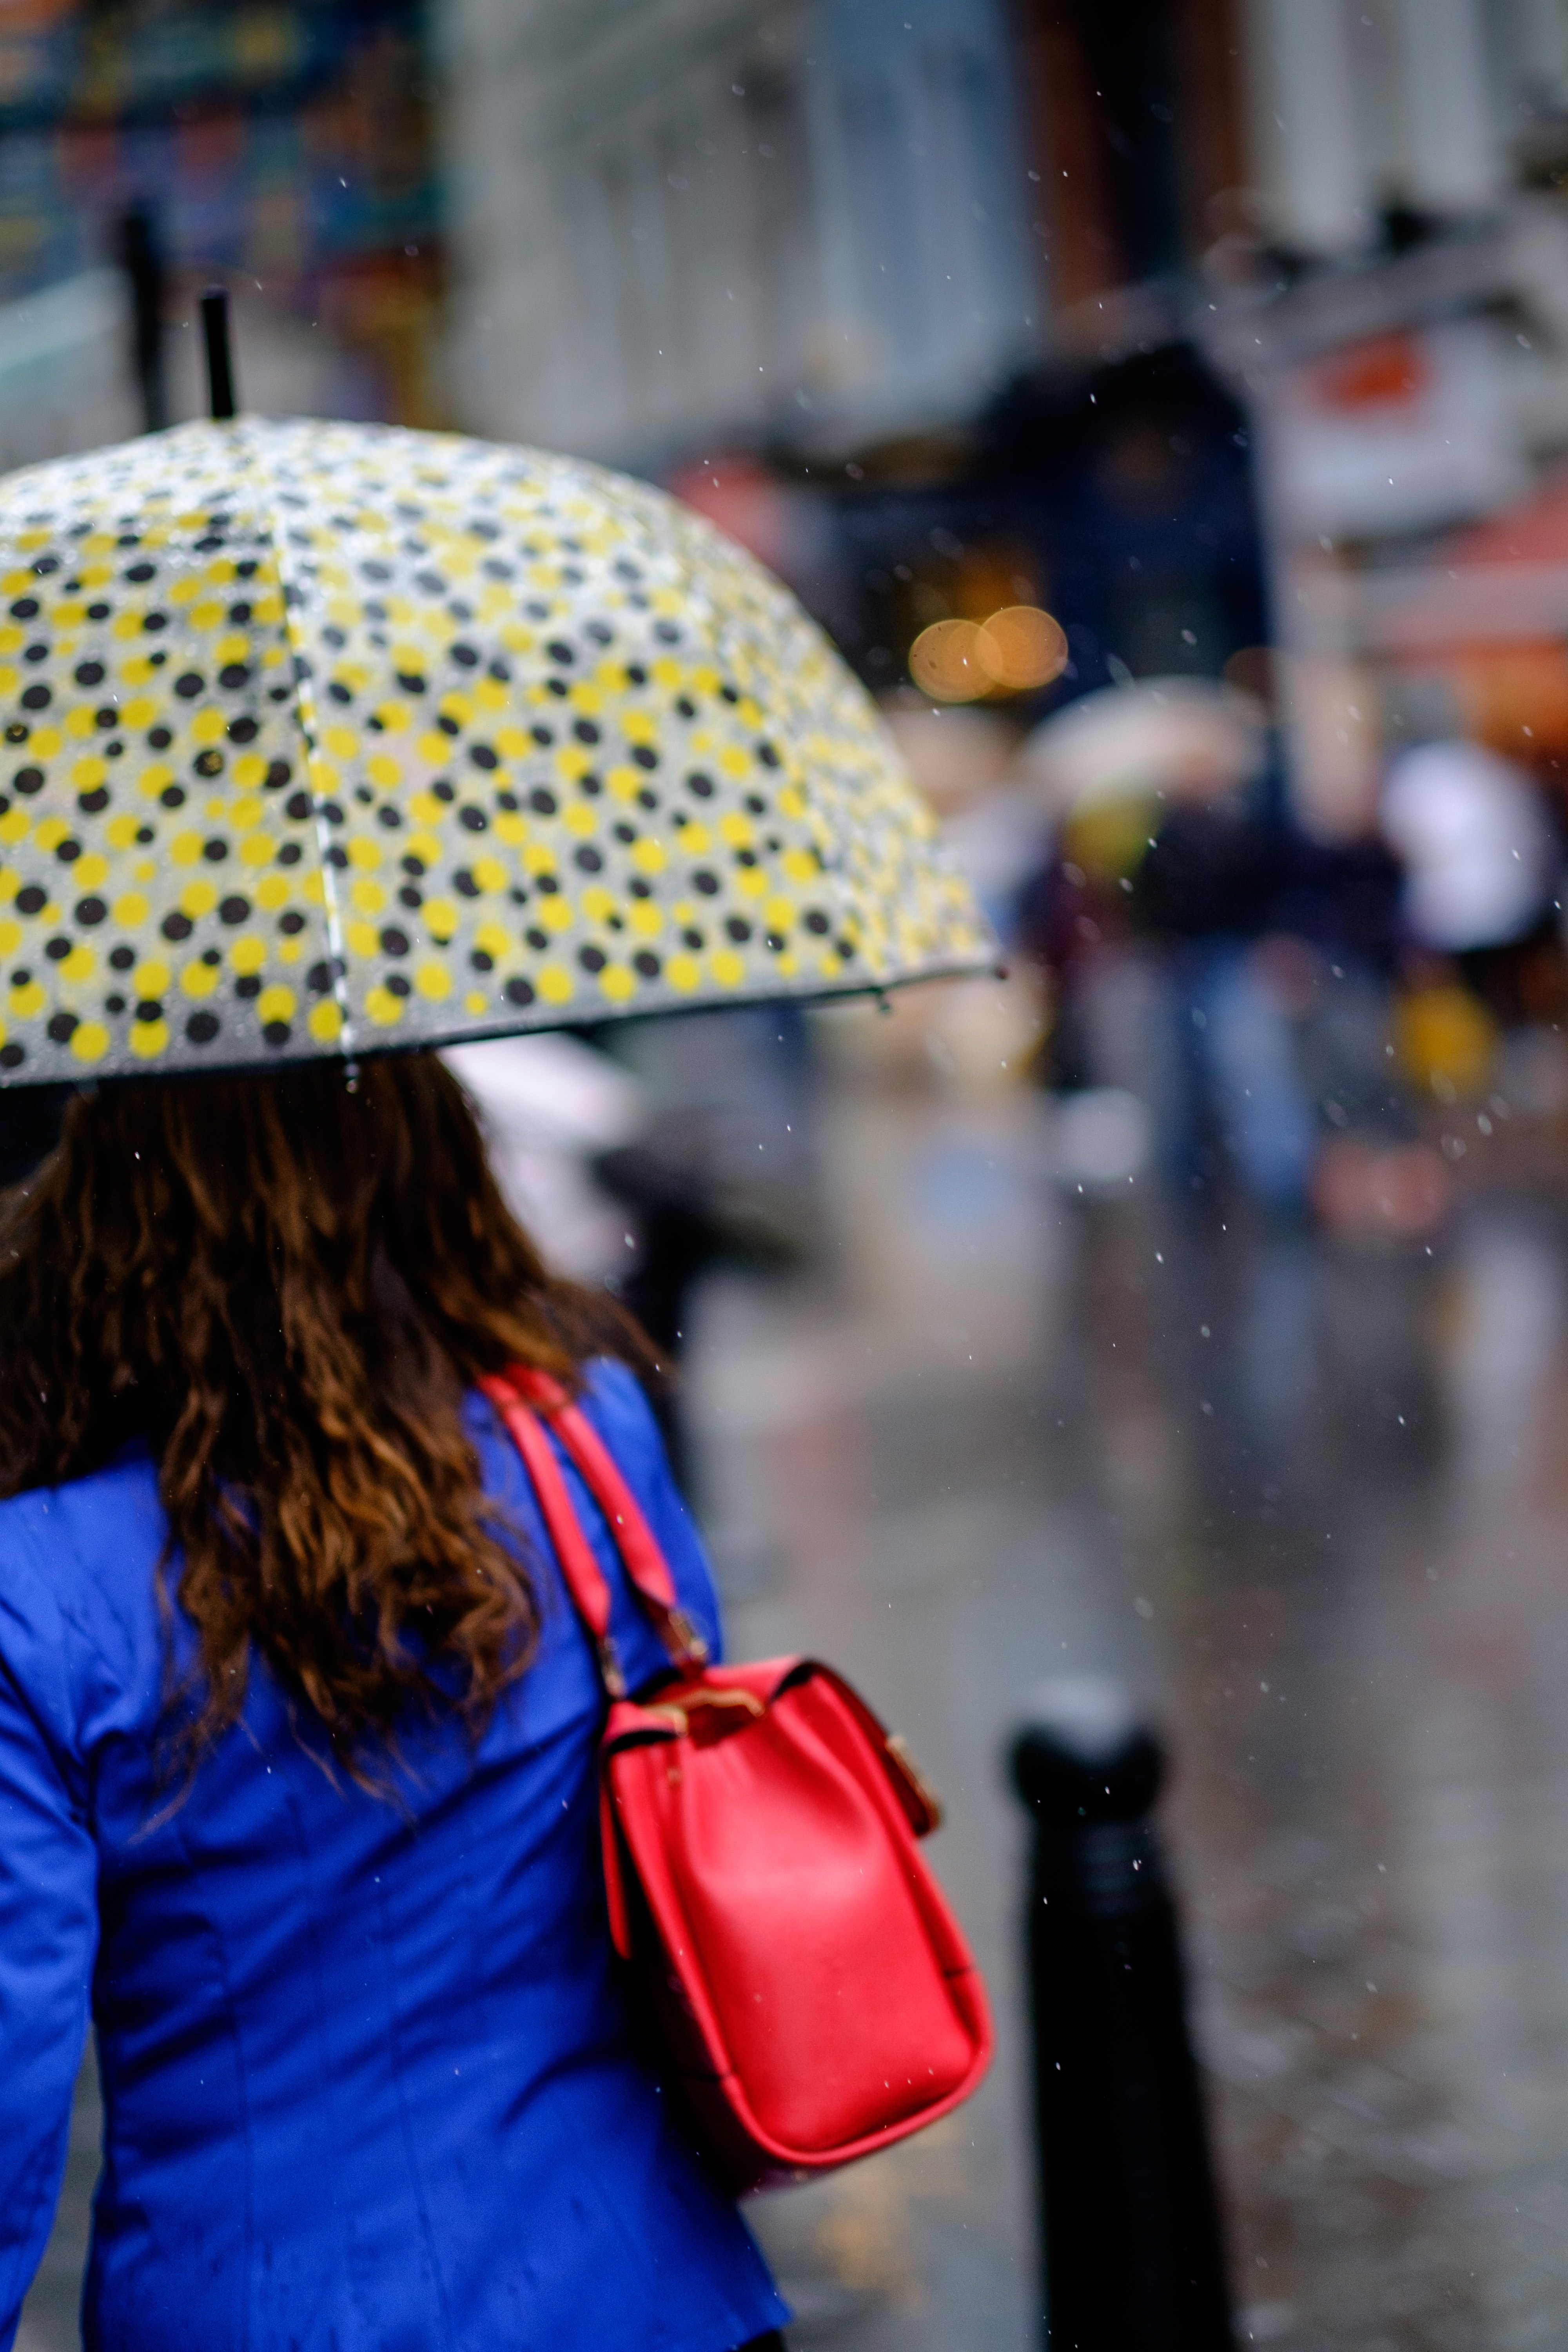 A woman holds a polka-dotted umbrella in rainy London Chinatown